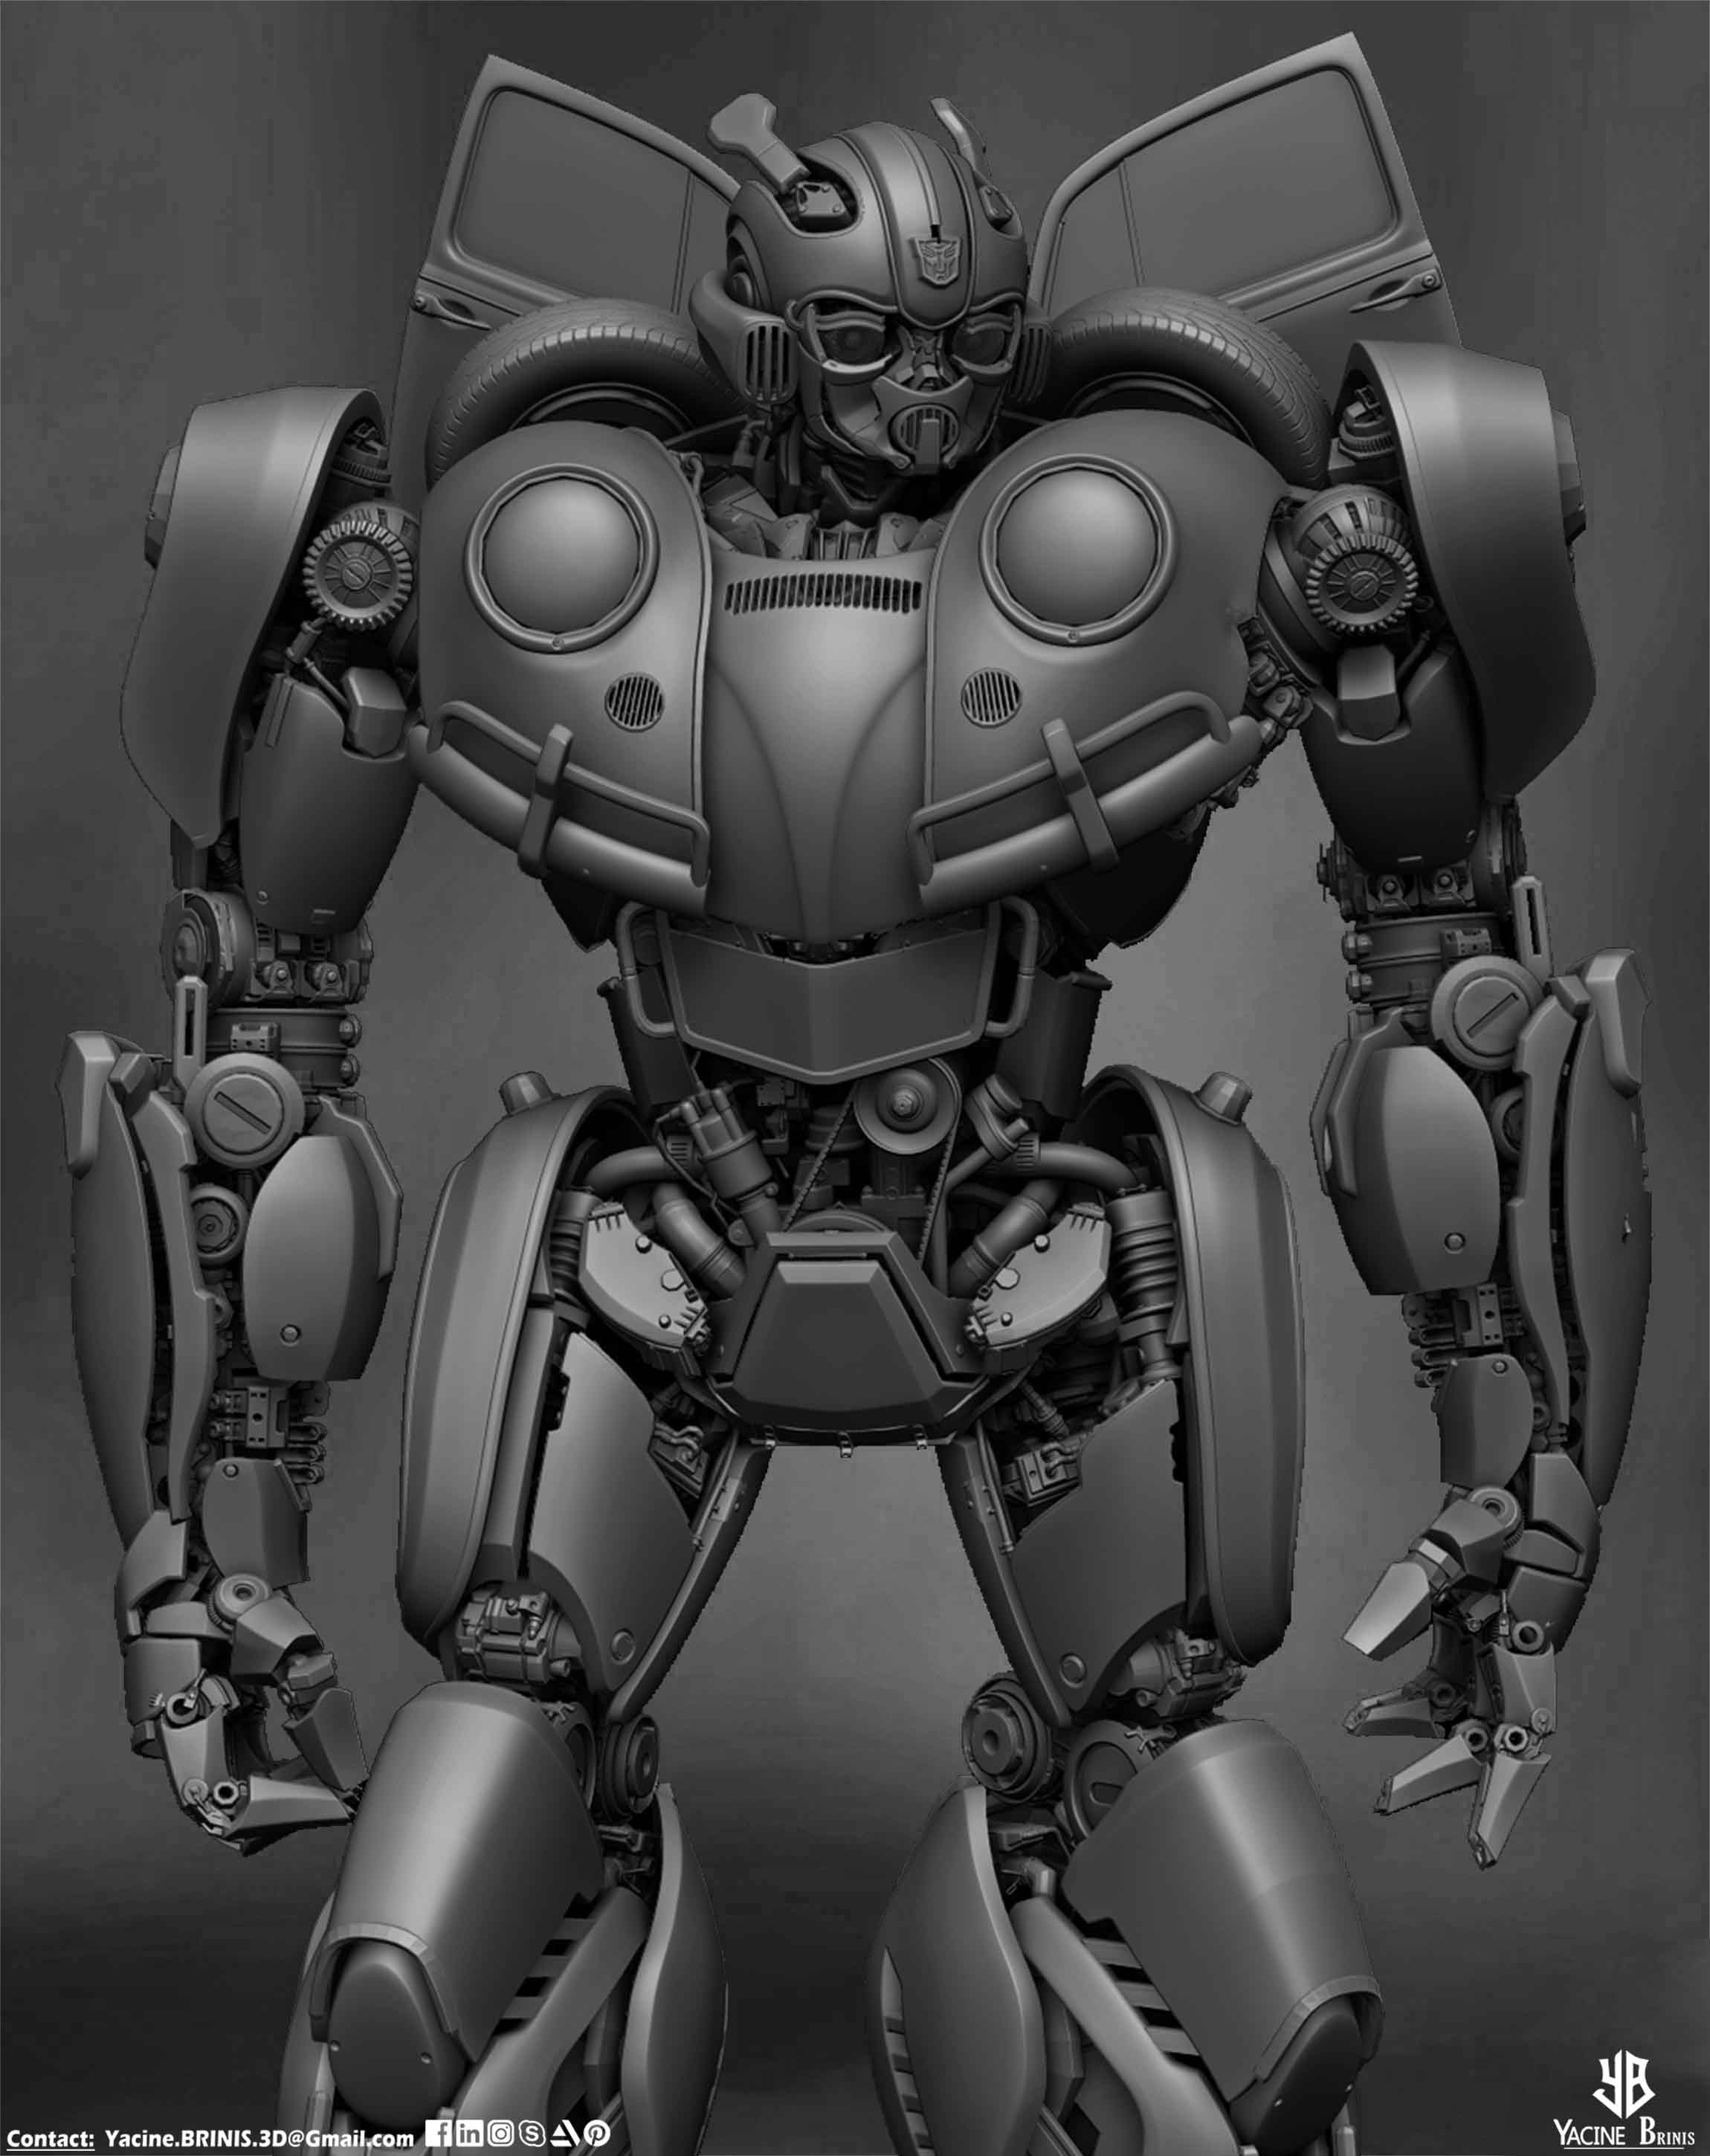 Bumblebee-Paramount Pictures-Designed by Yacine BRINIS-009